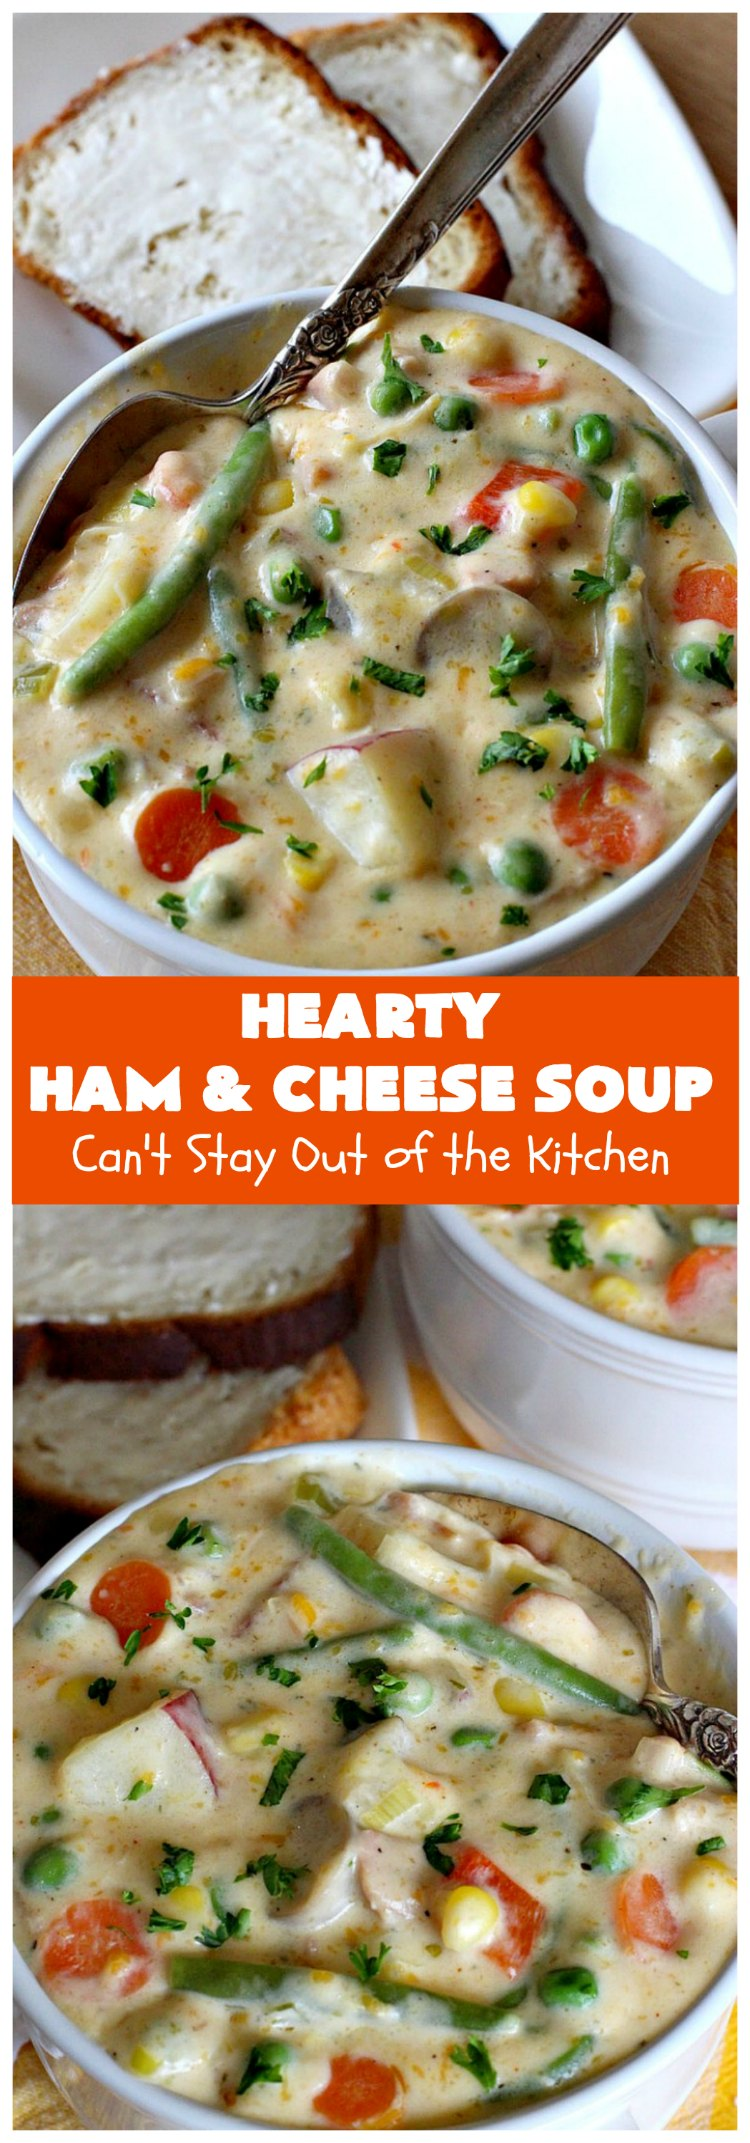 Hearty Ham and Cheese Soup | Can't Stay Out of the Kitchen